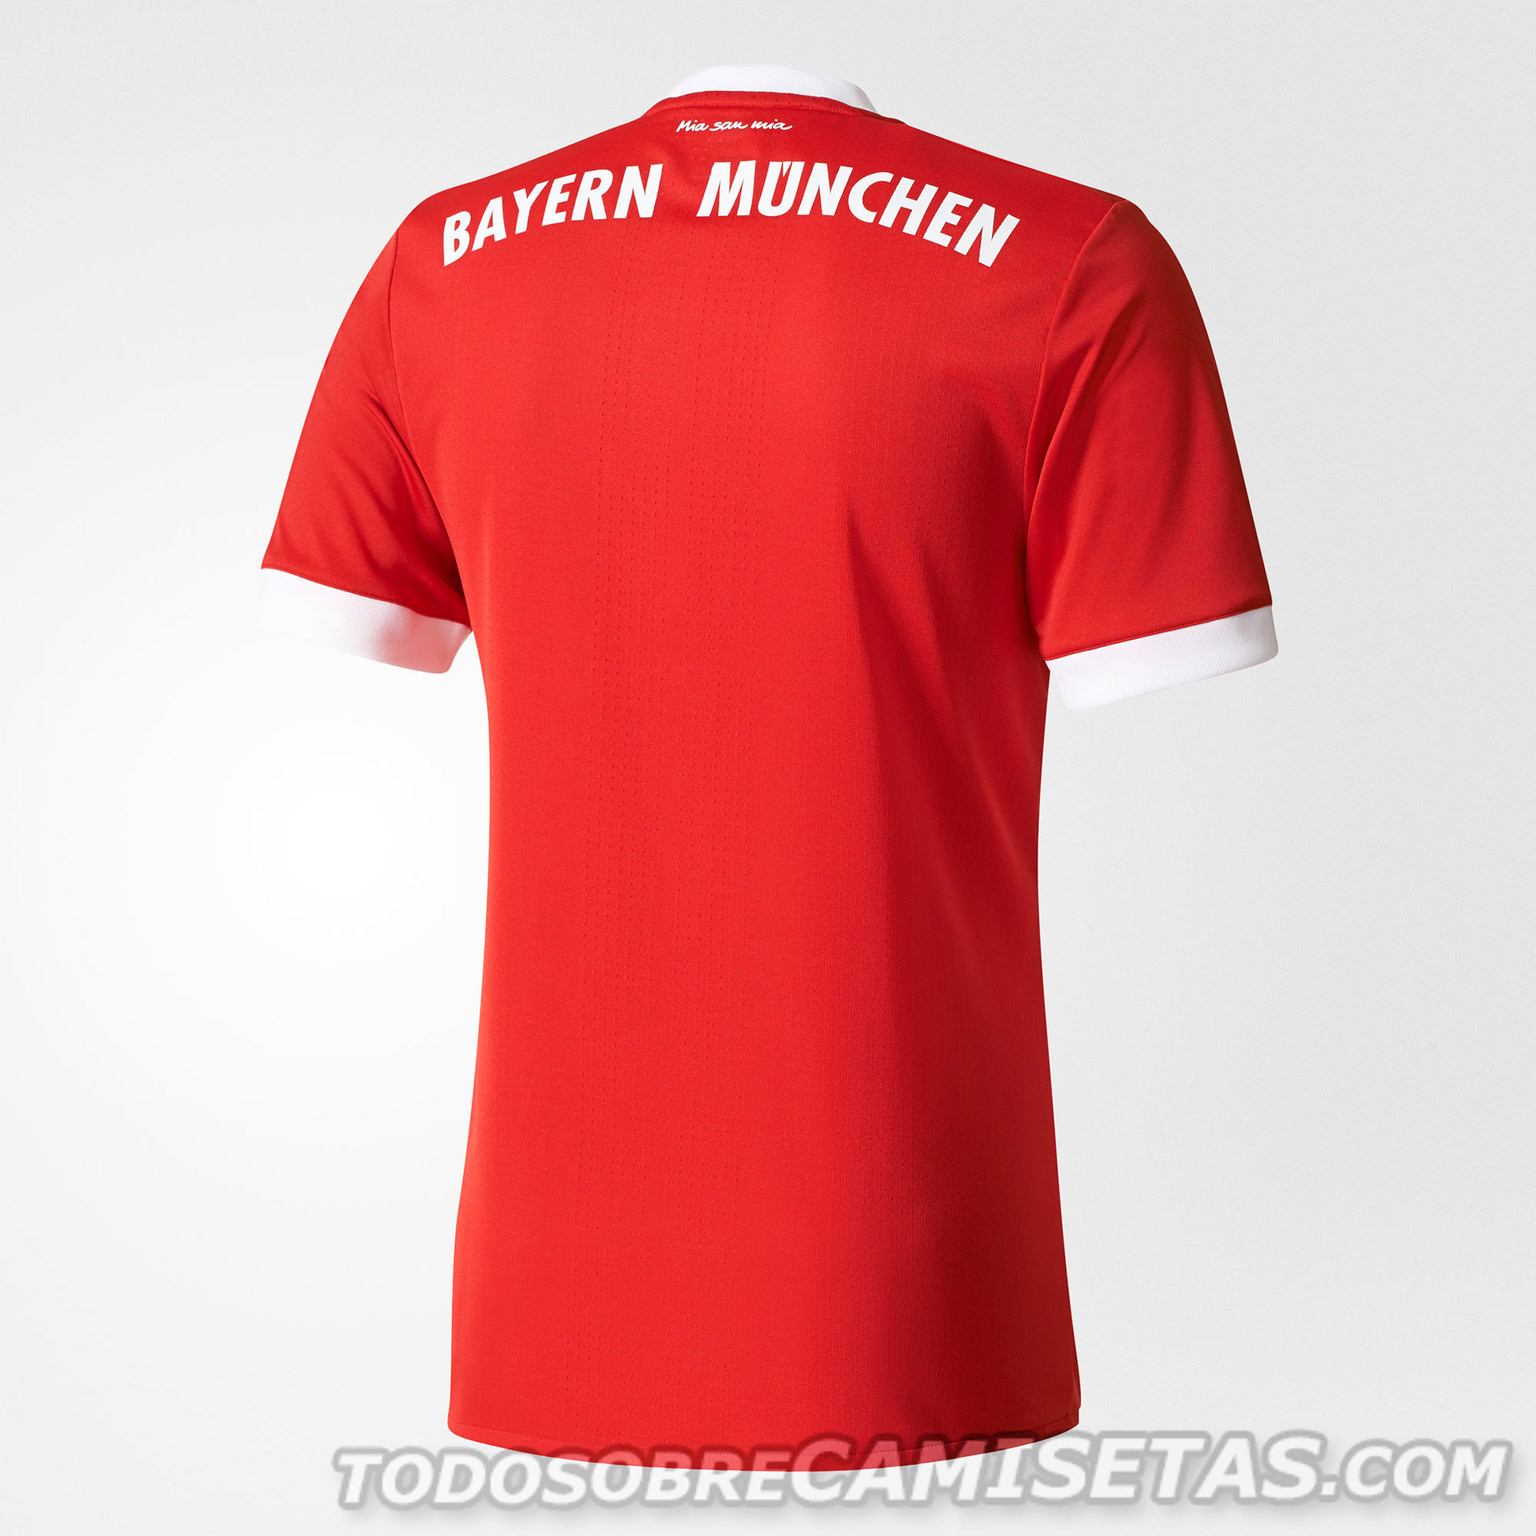 Bayern-Munich-2017-18-adidas-new-home-kit-3.jpg